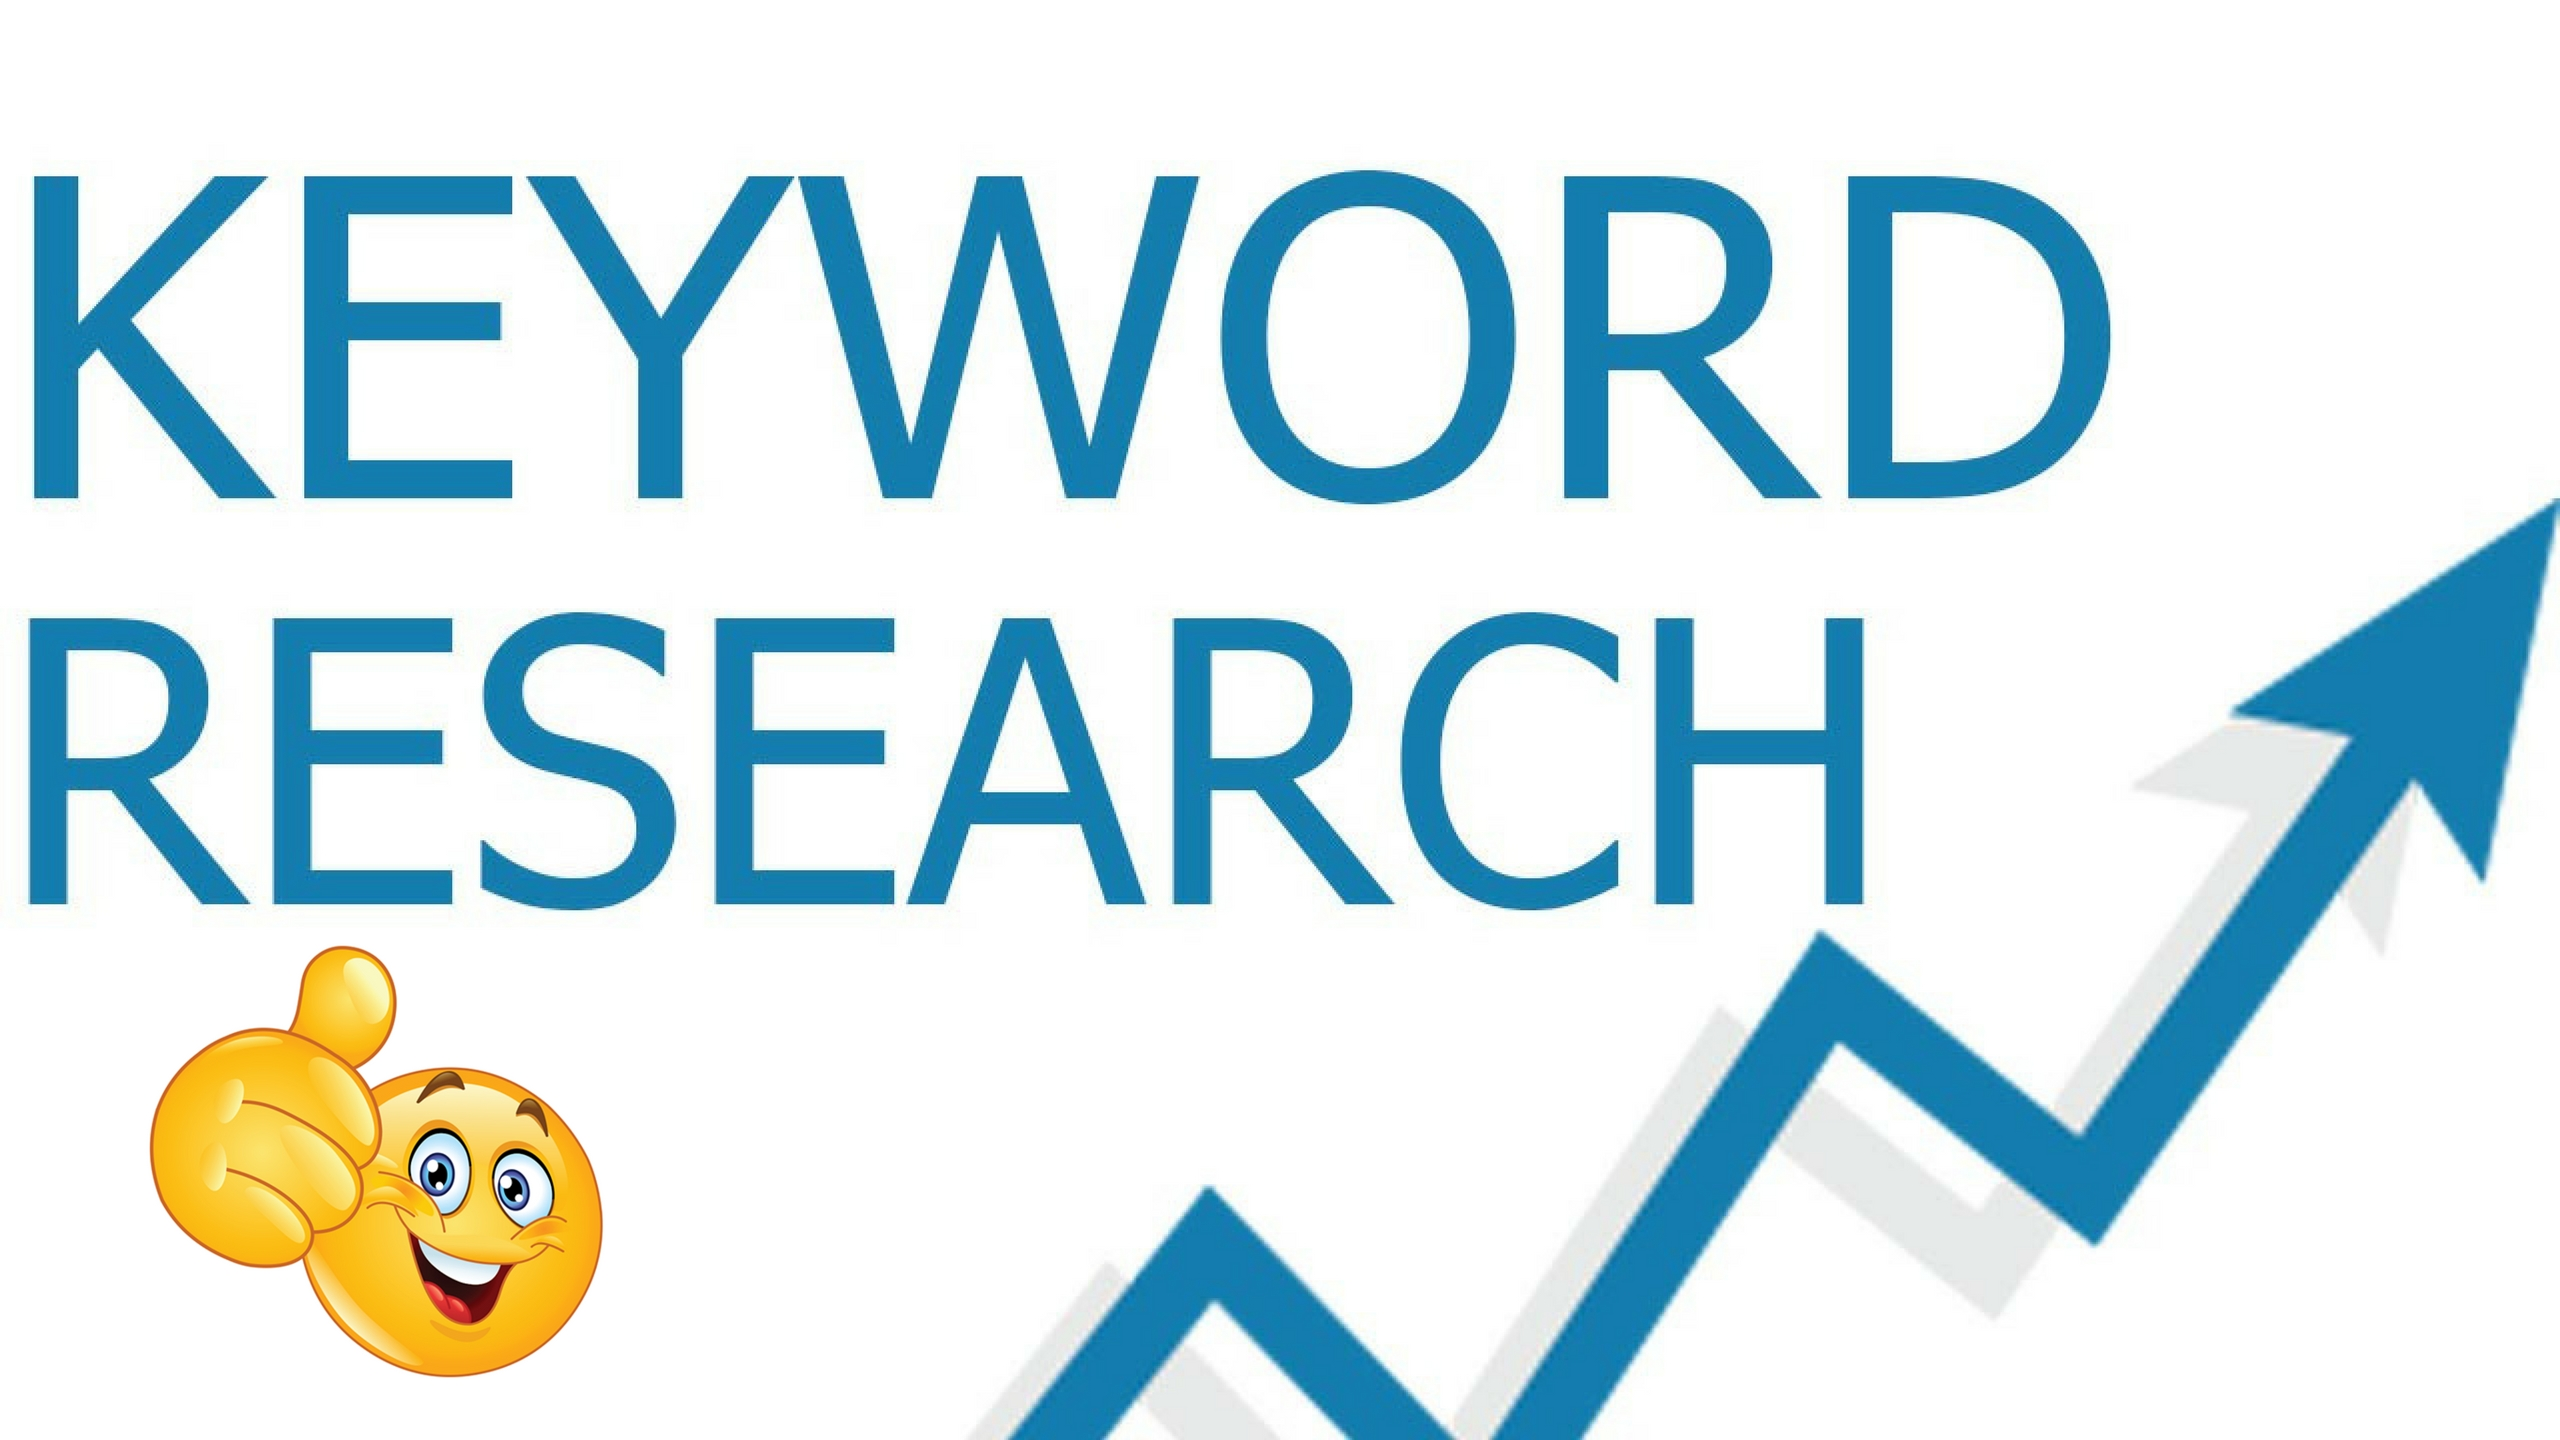 500 keywords+ 10 most profitable keyword research